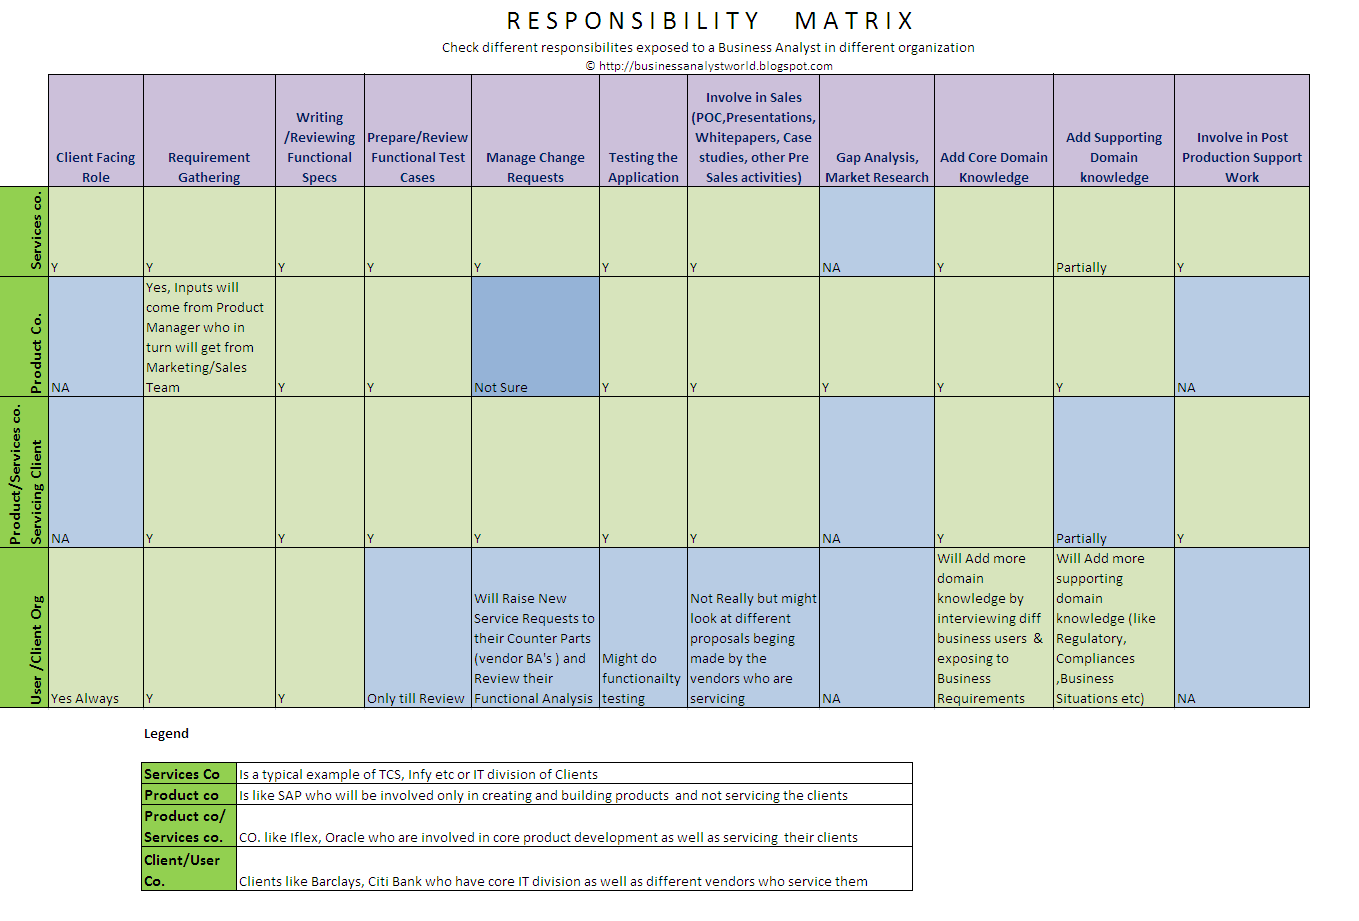 business analyst responsibilities across different organizations ba roles and responsibilities